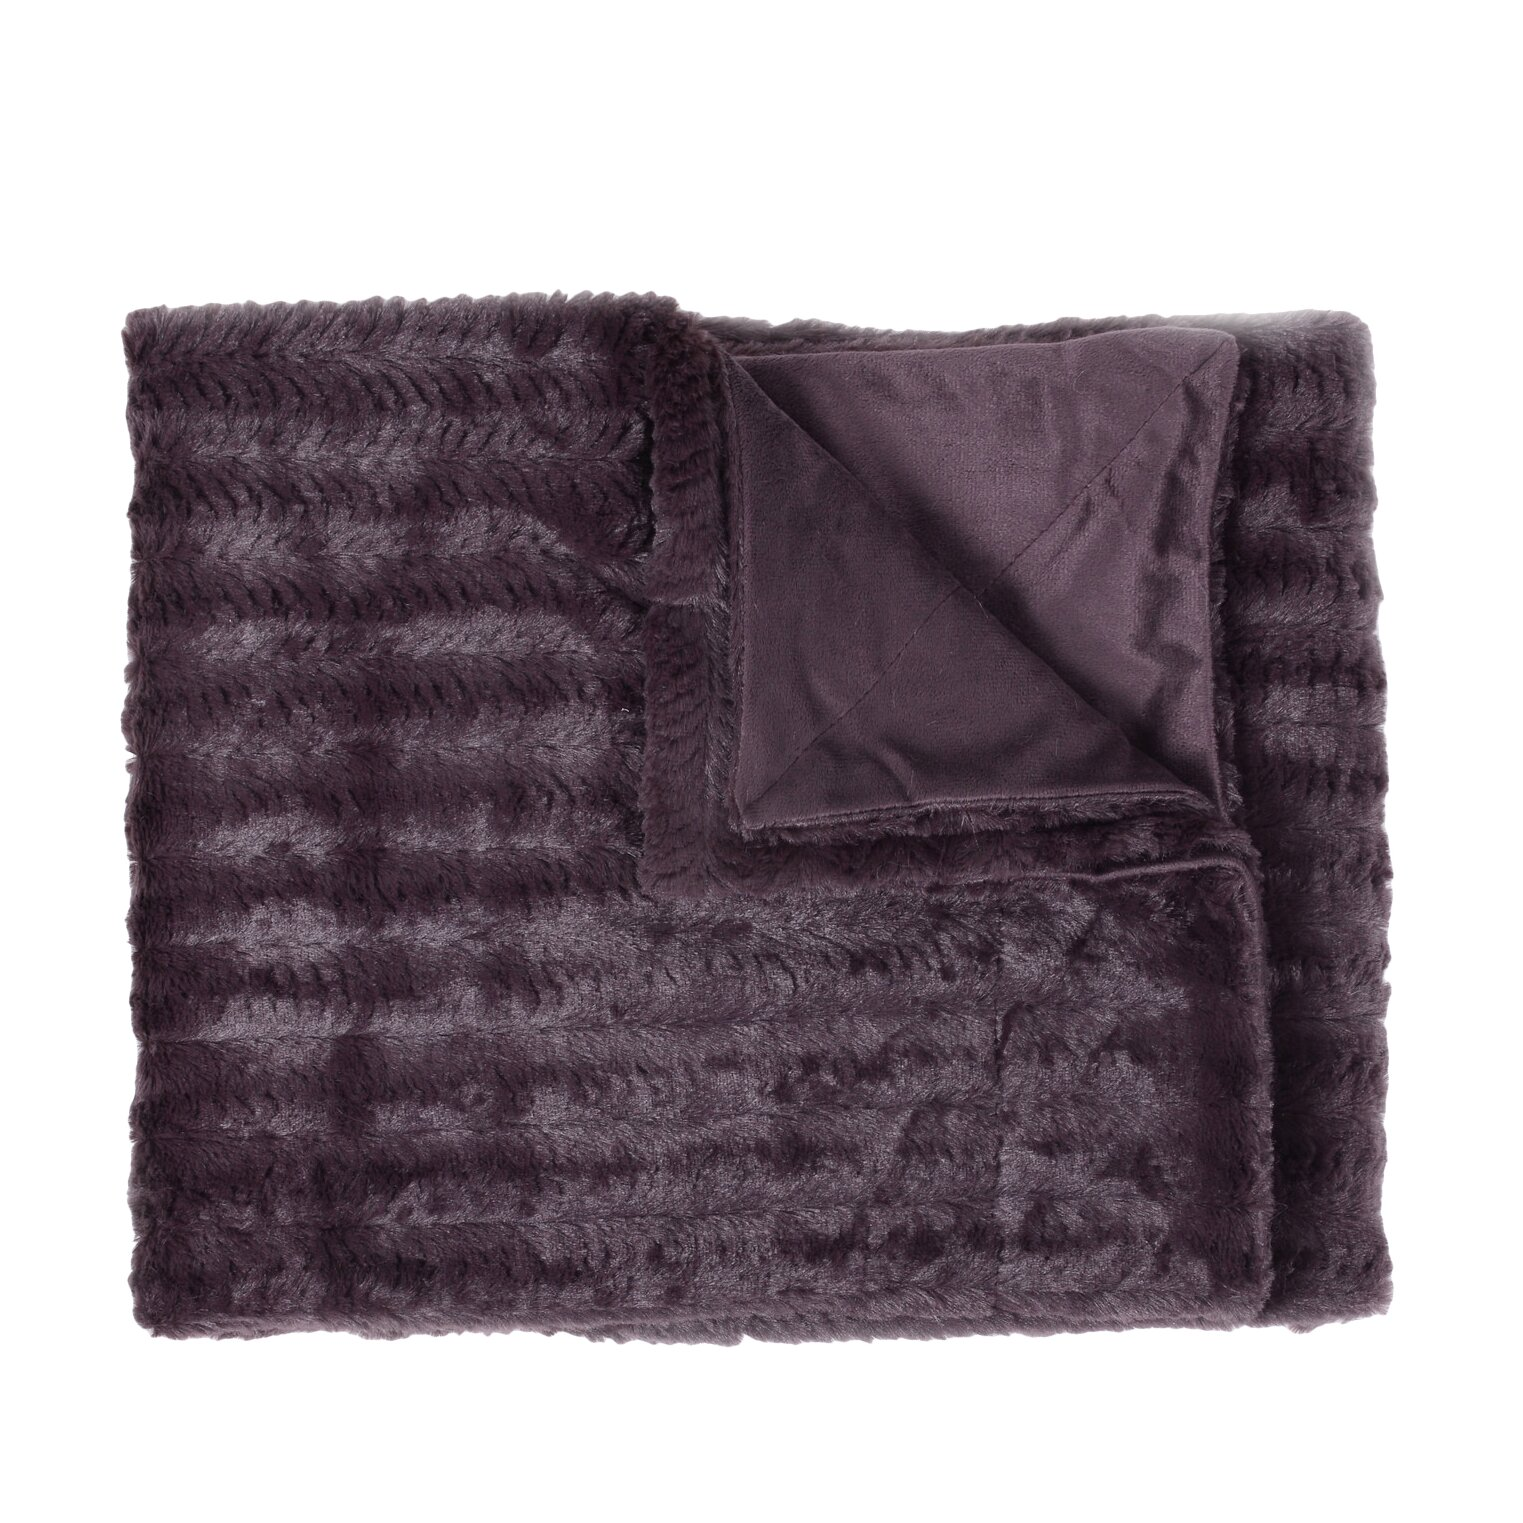 rib decorative reversible faux fur and mink throw blanket - Decorative Throw Blankets